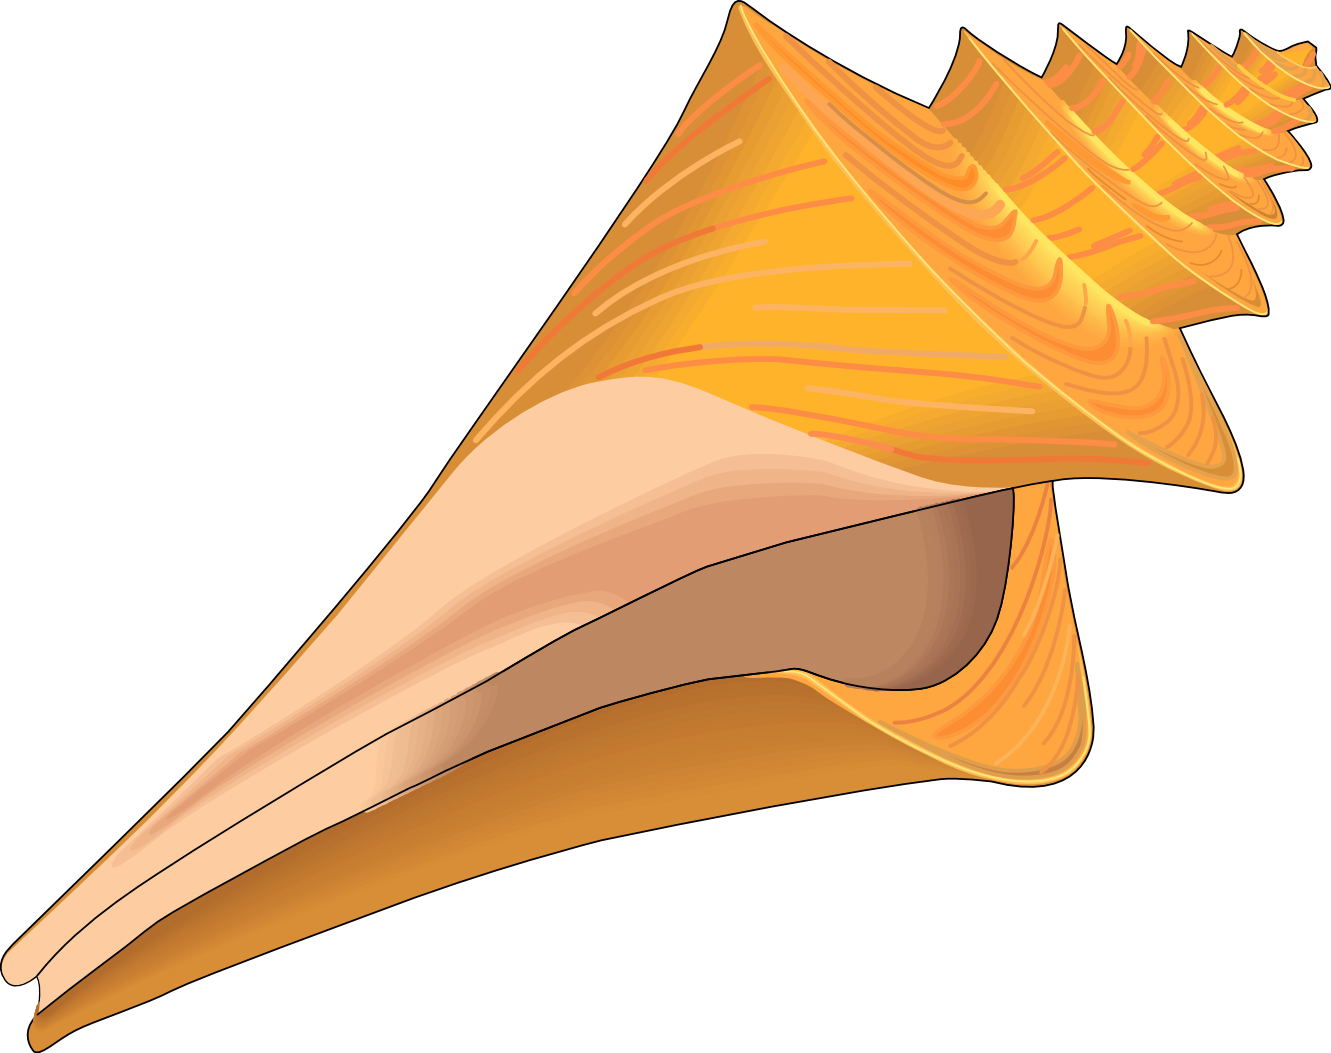 Sea Shell Clipart - ClipArt Best